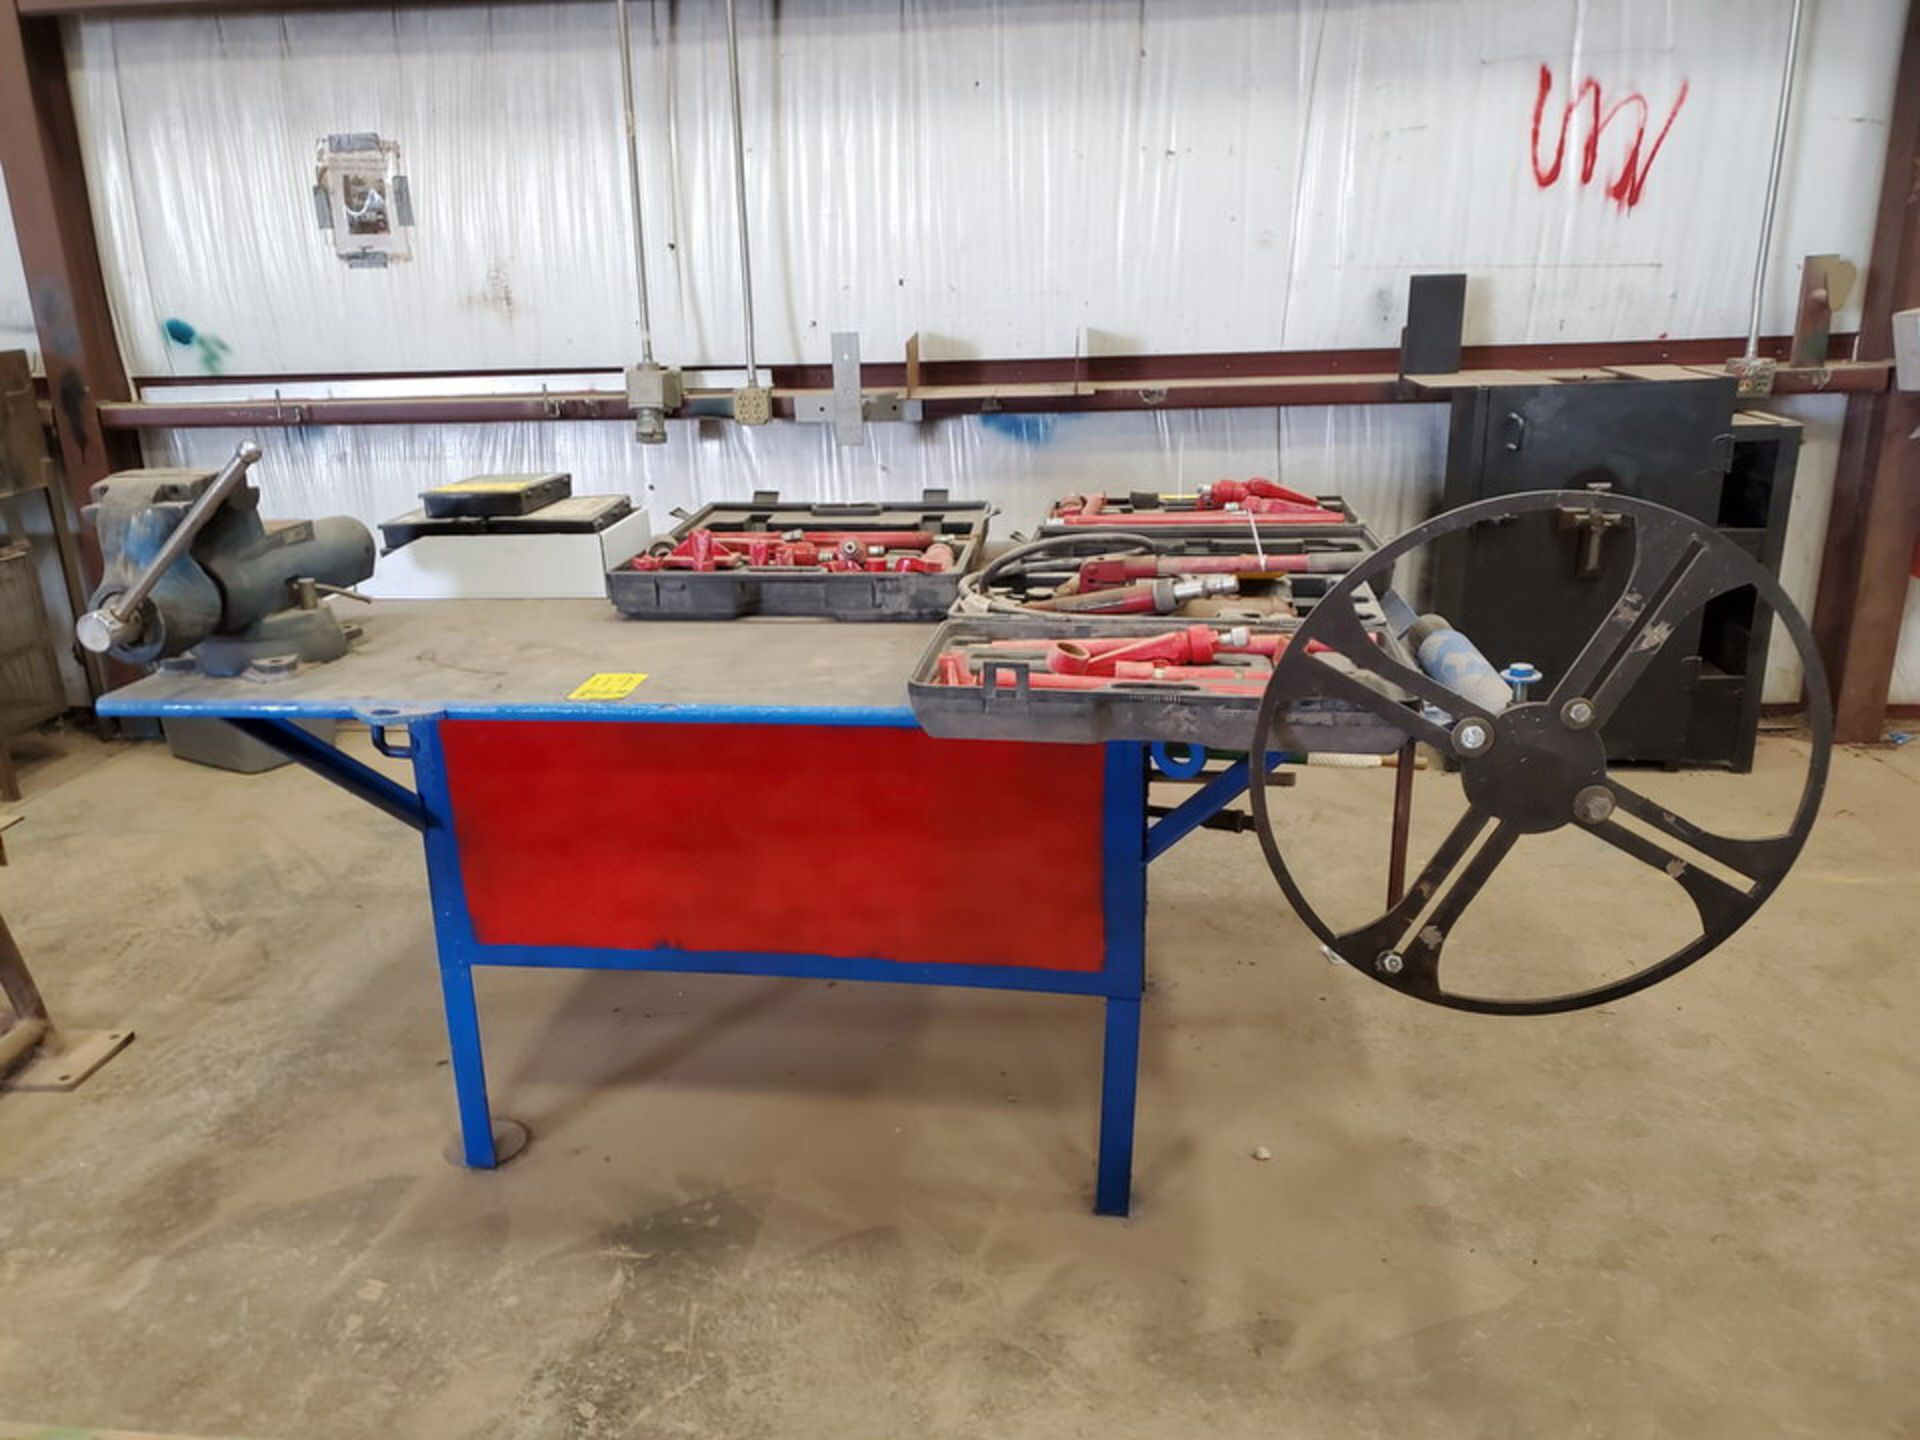 "Stl Welding Table W/ 6"" Vise 48"" x 70"" x 35""H (Material Excluded) - Image 2 of 8"